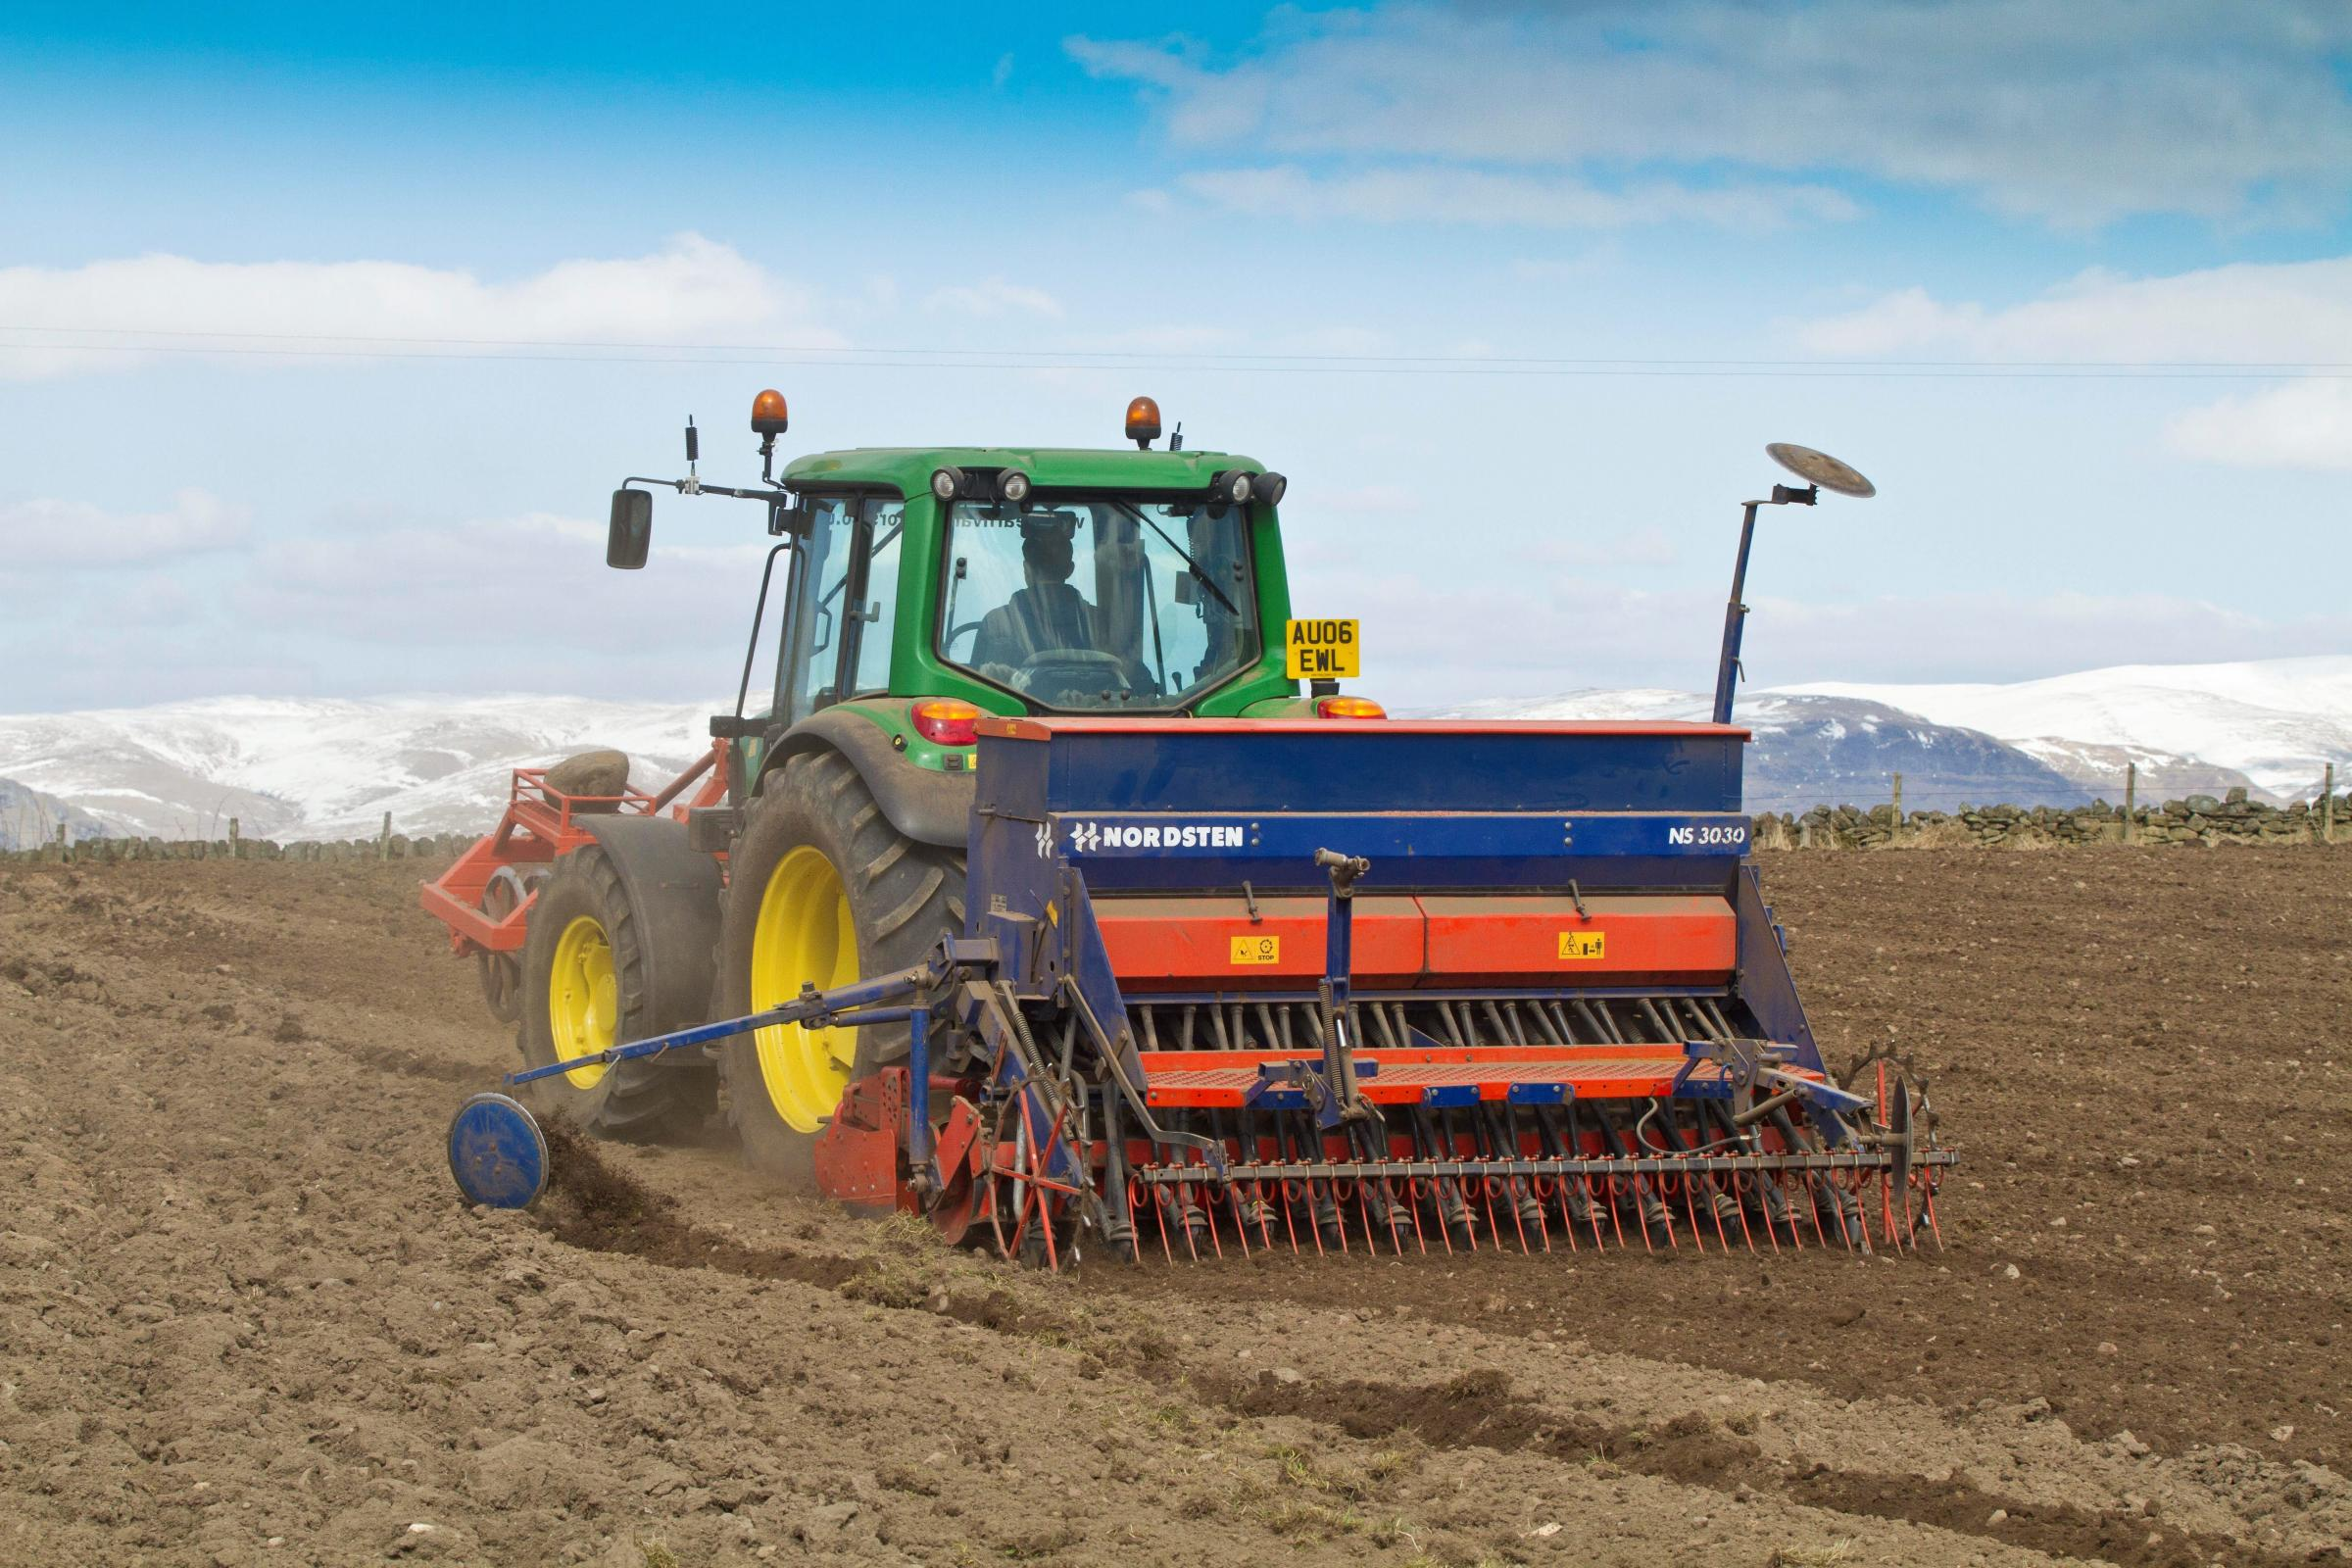 Looks like it might be an early sowing season this spring – let's hope the conditions are like this